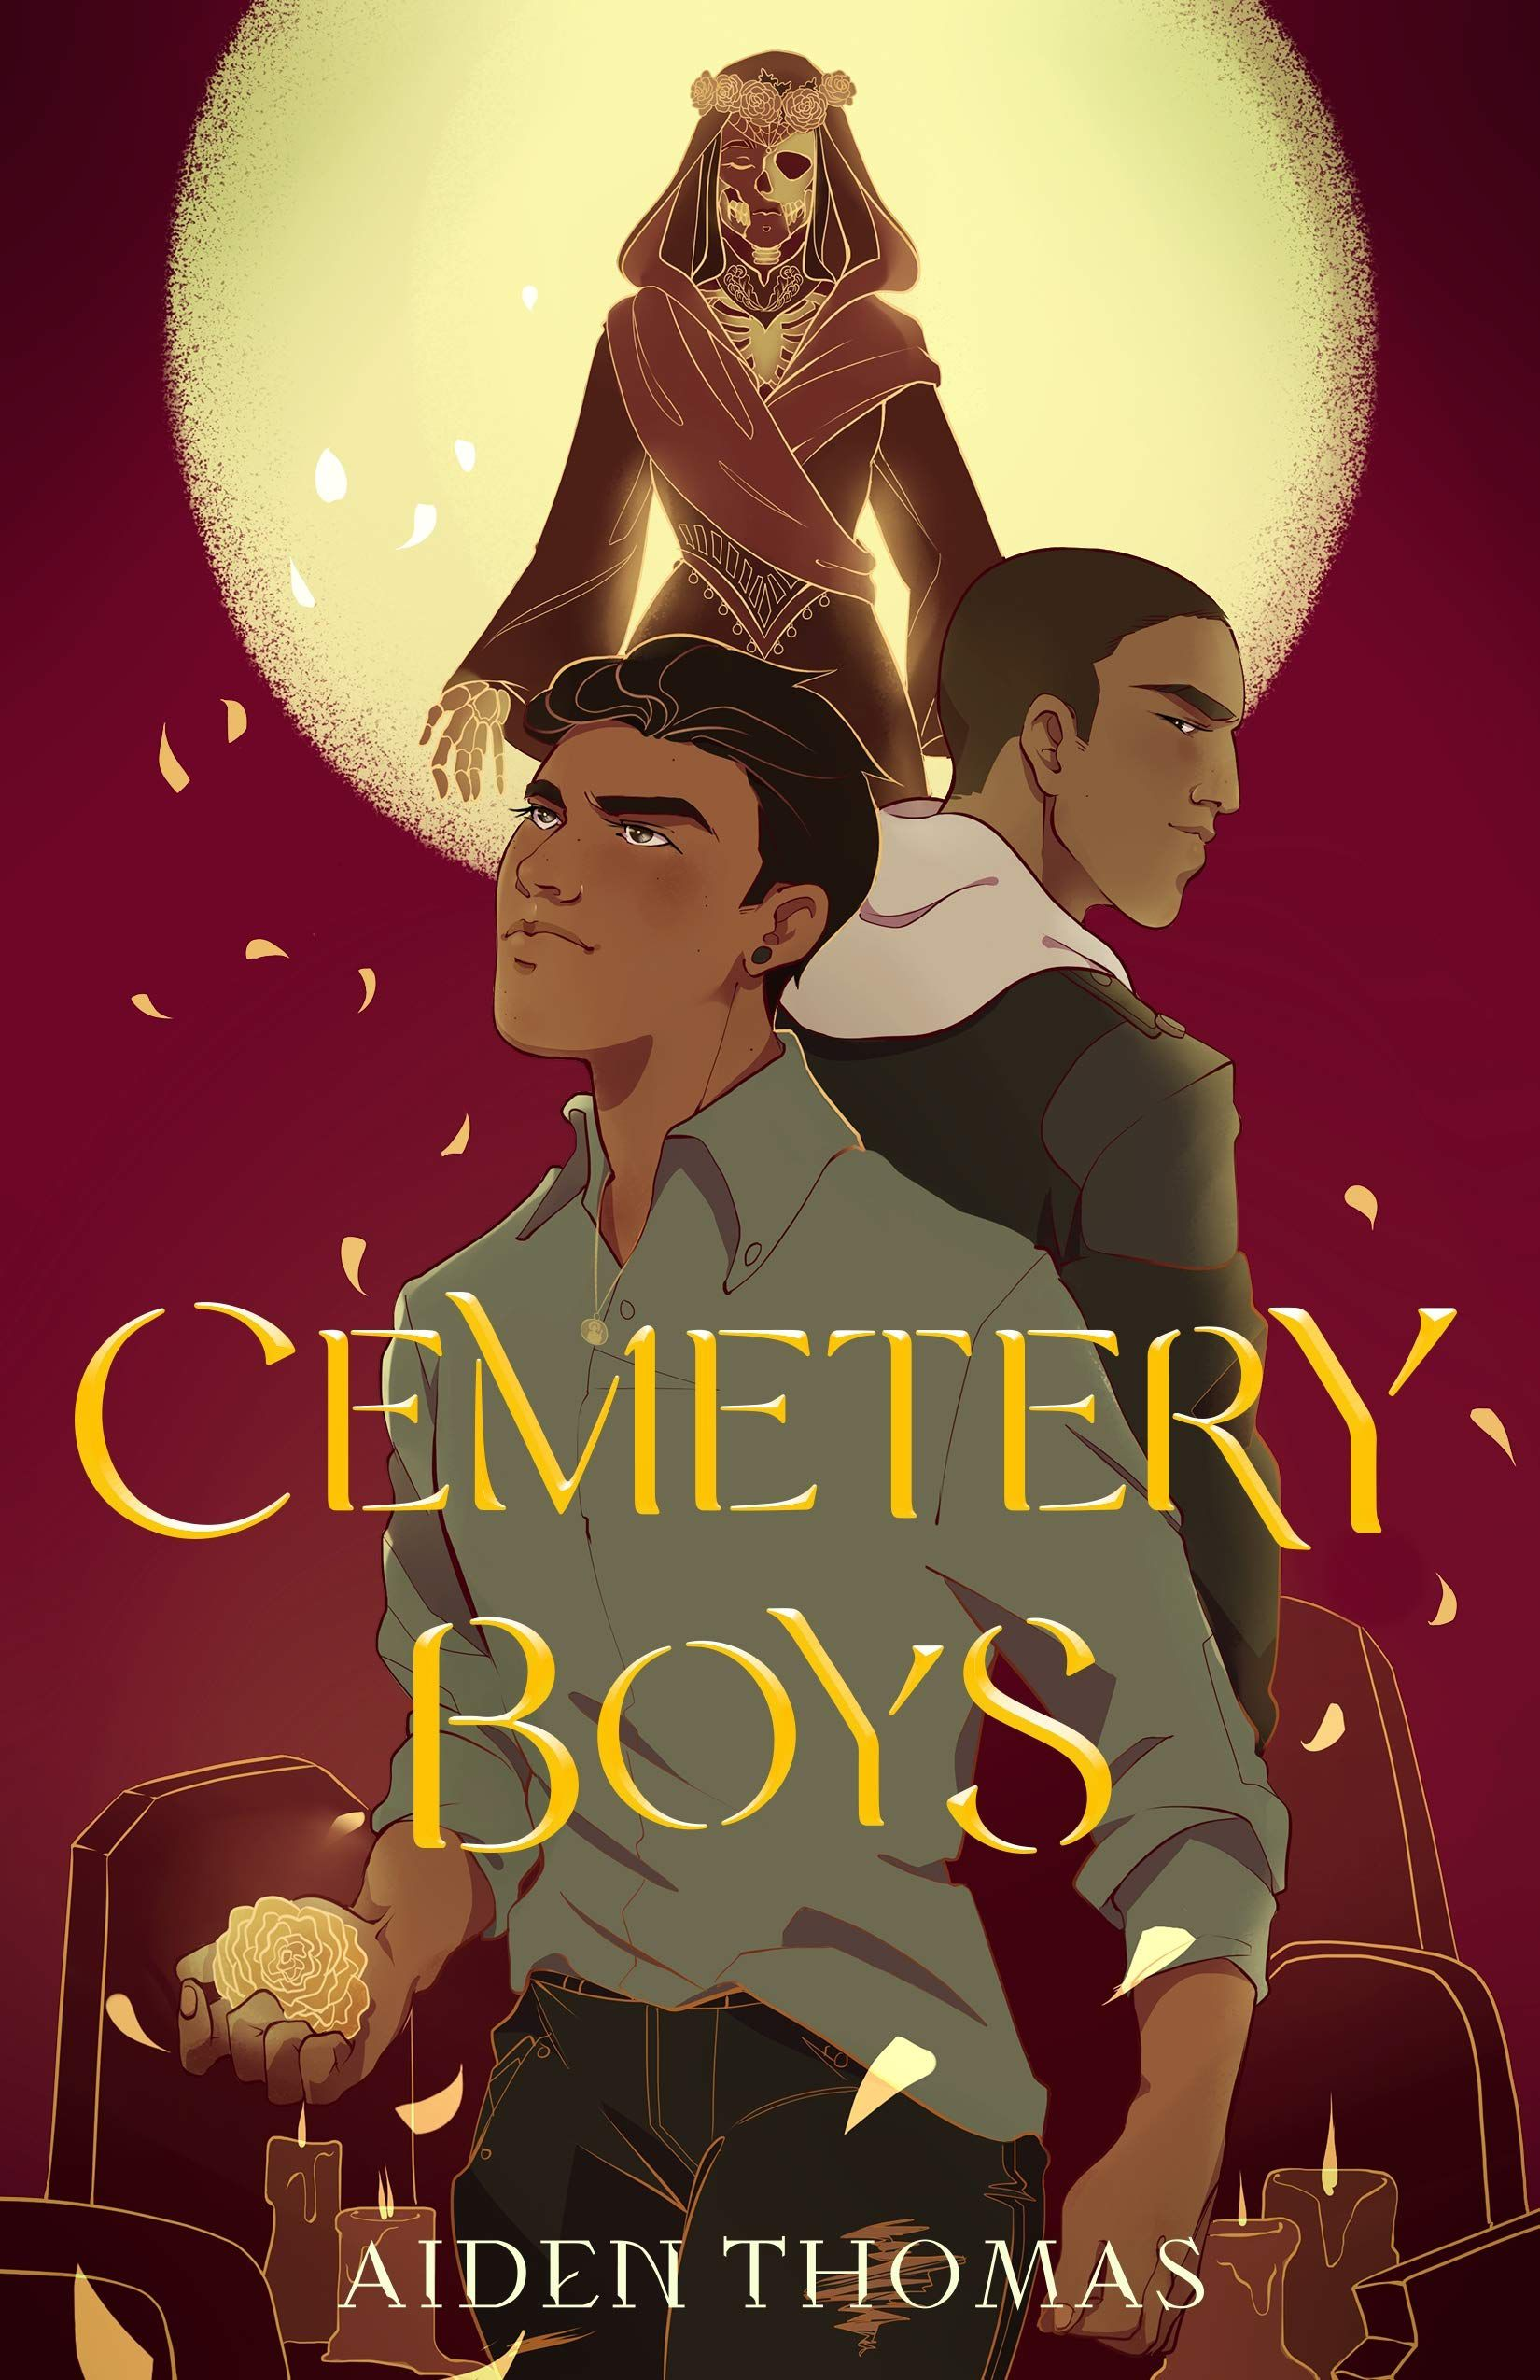 Cemetery Boys.jpg.optimal